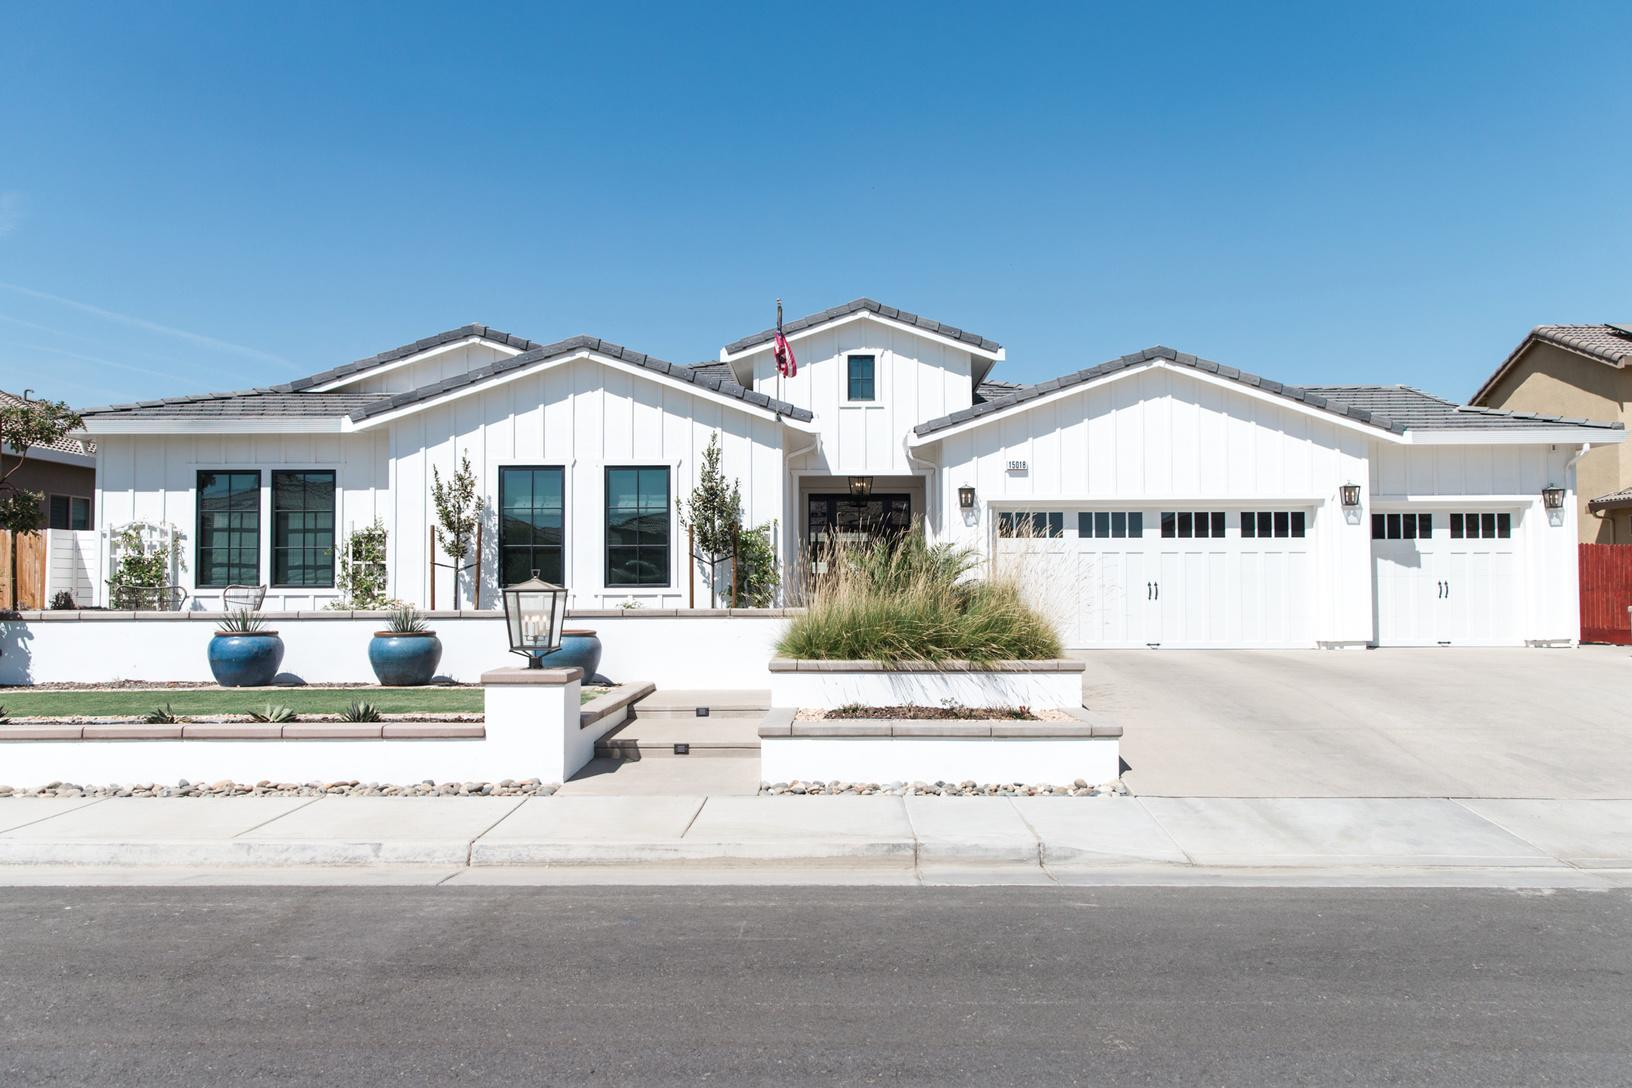 Bakersfield Home Remodel - Finished Exterior